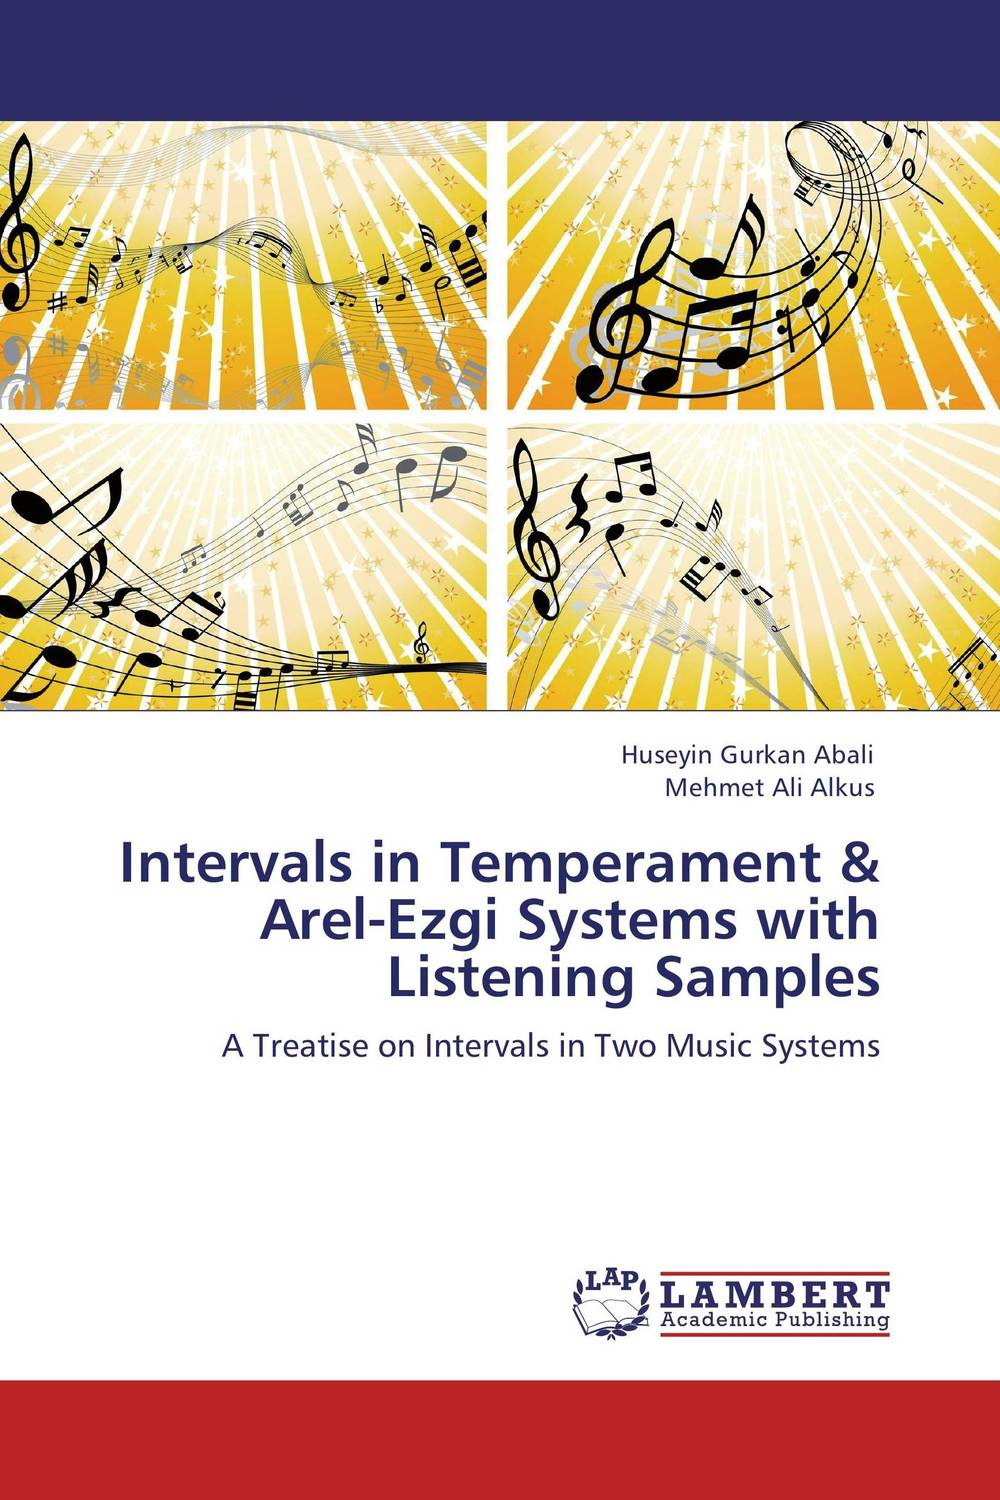 Intervals in Temperament & Arel-Ezgi Systems with Listening Samples